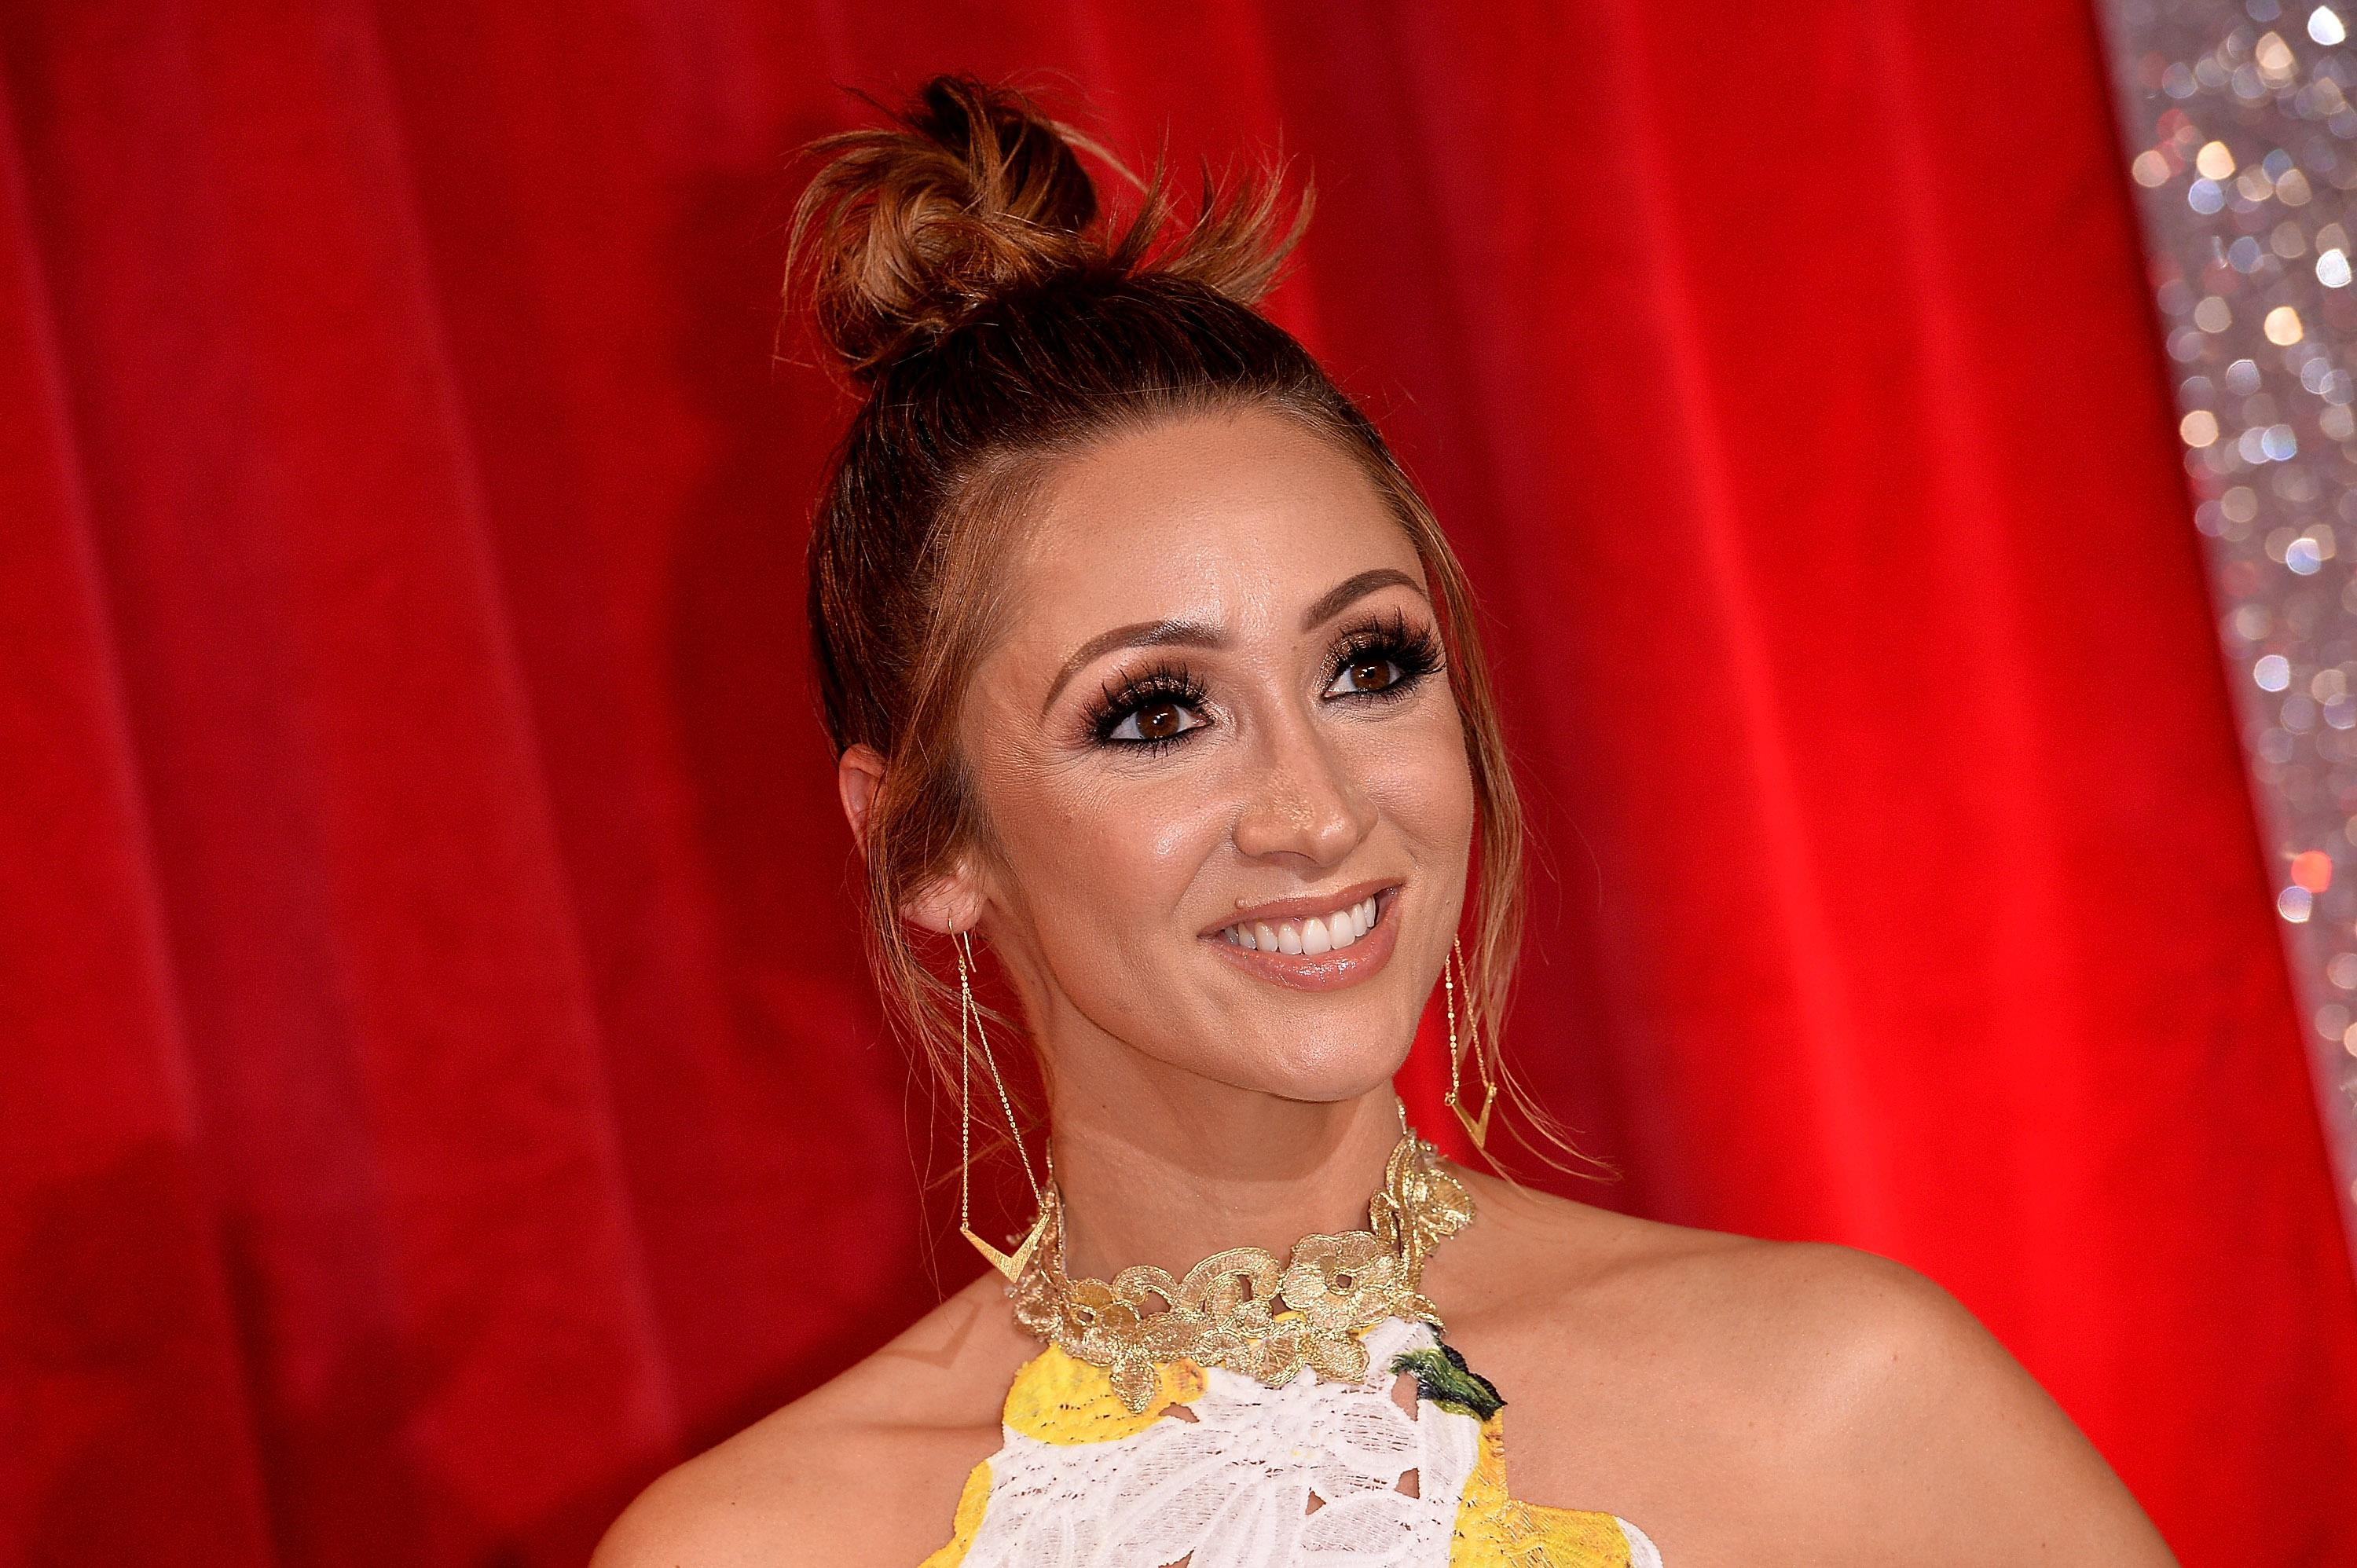 Lucy-Jo Hudson 'in love' after giving birth to baby boy